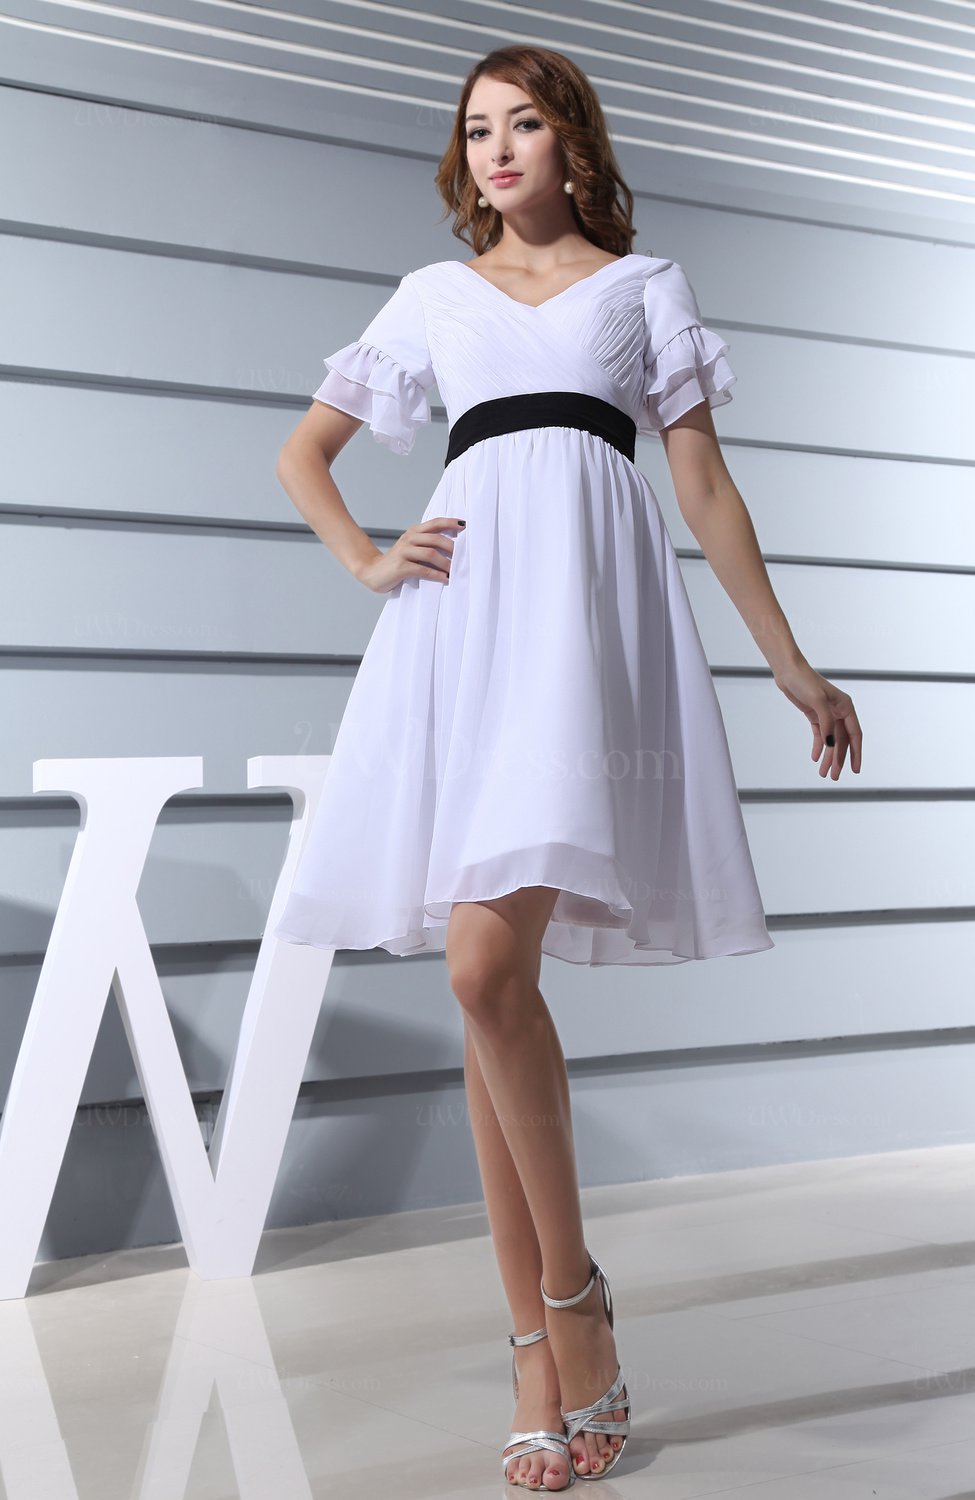 b8a42bd9988 White Classic A-line V-neck Zip up Chiffon Ruching Homecoming Dresses  (Style D89688)